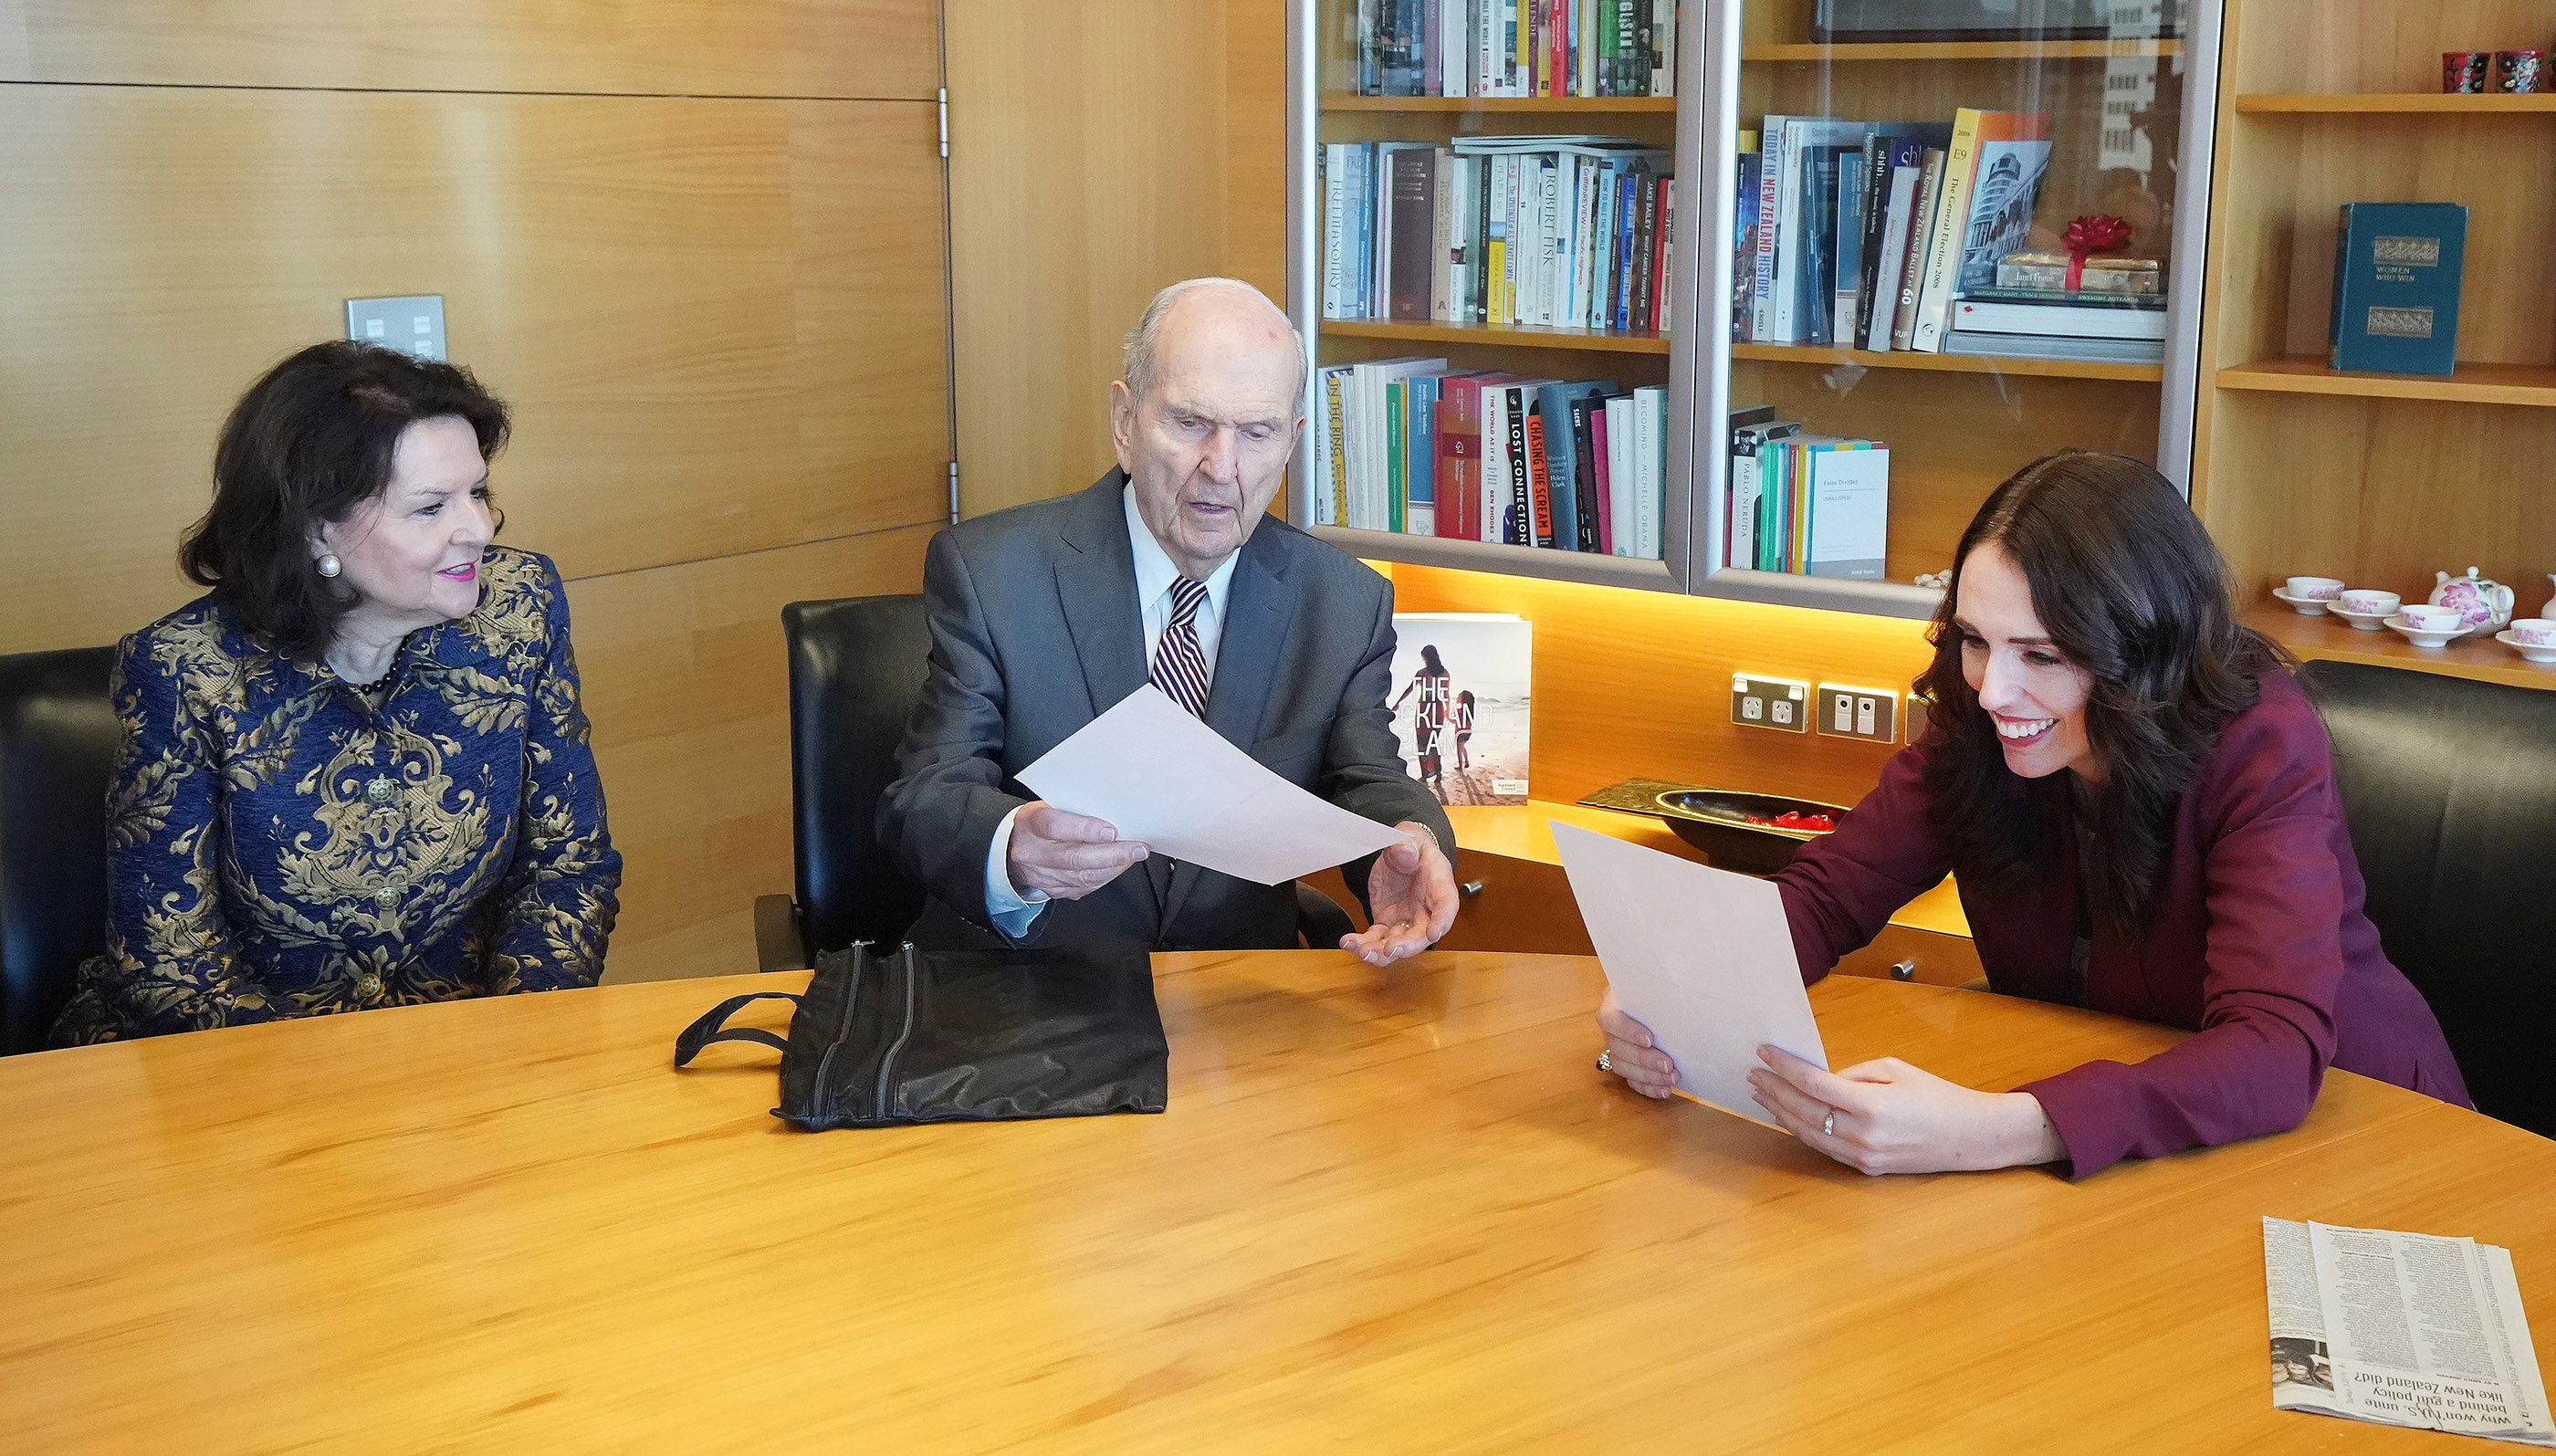 President Russell M. Nelson of The Church of Jesus Christ of Latter-day Saints and his wife, Sister Wendy Nelson, give photos of the First Presidency and Quorum of the Twelve Apostles to New Zealand Prime Minister Jacinda Ardern in Wellington, New Zealand, on Monday, May 19, 2019.